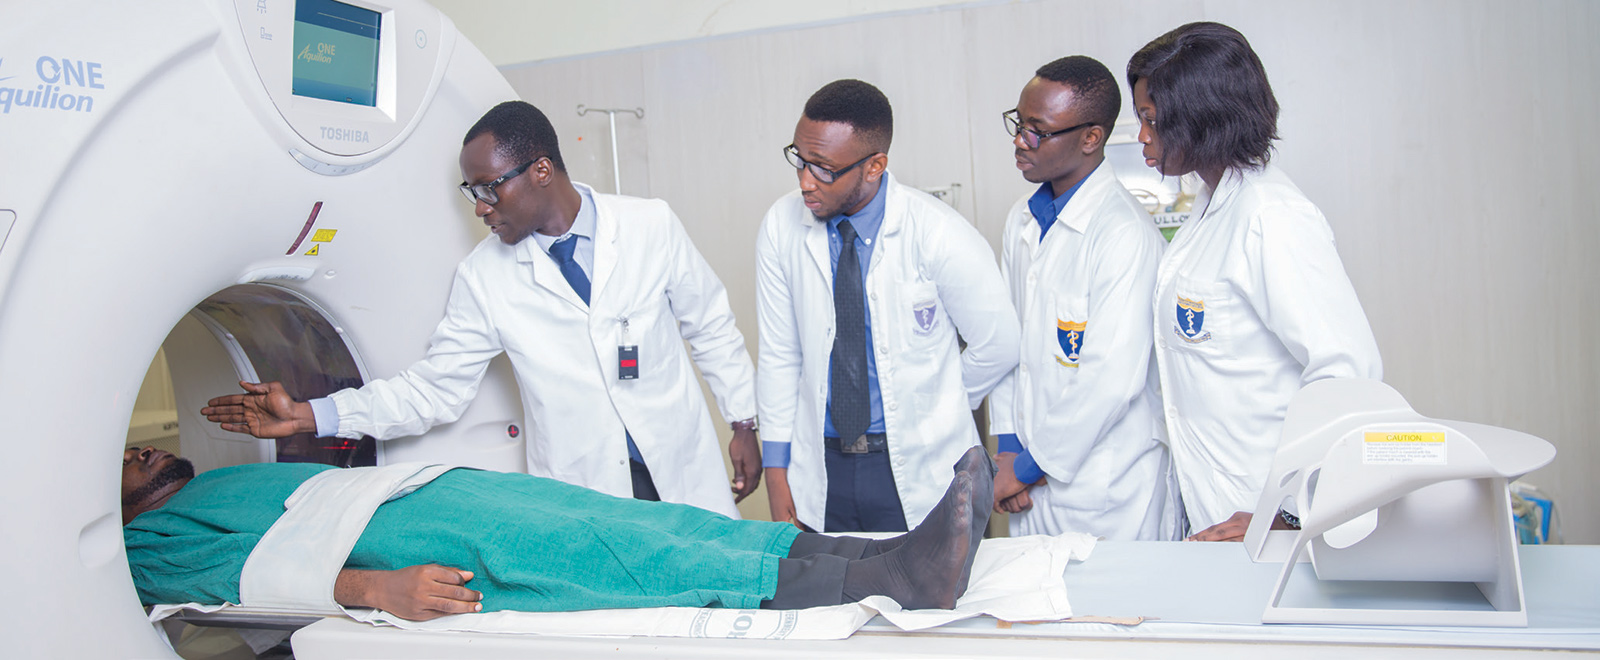 Admissions into the Graduate Entry Medical Programme (GEMP